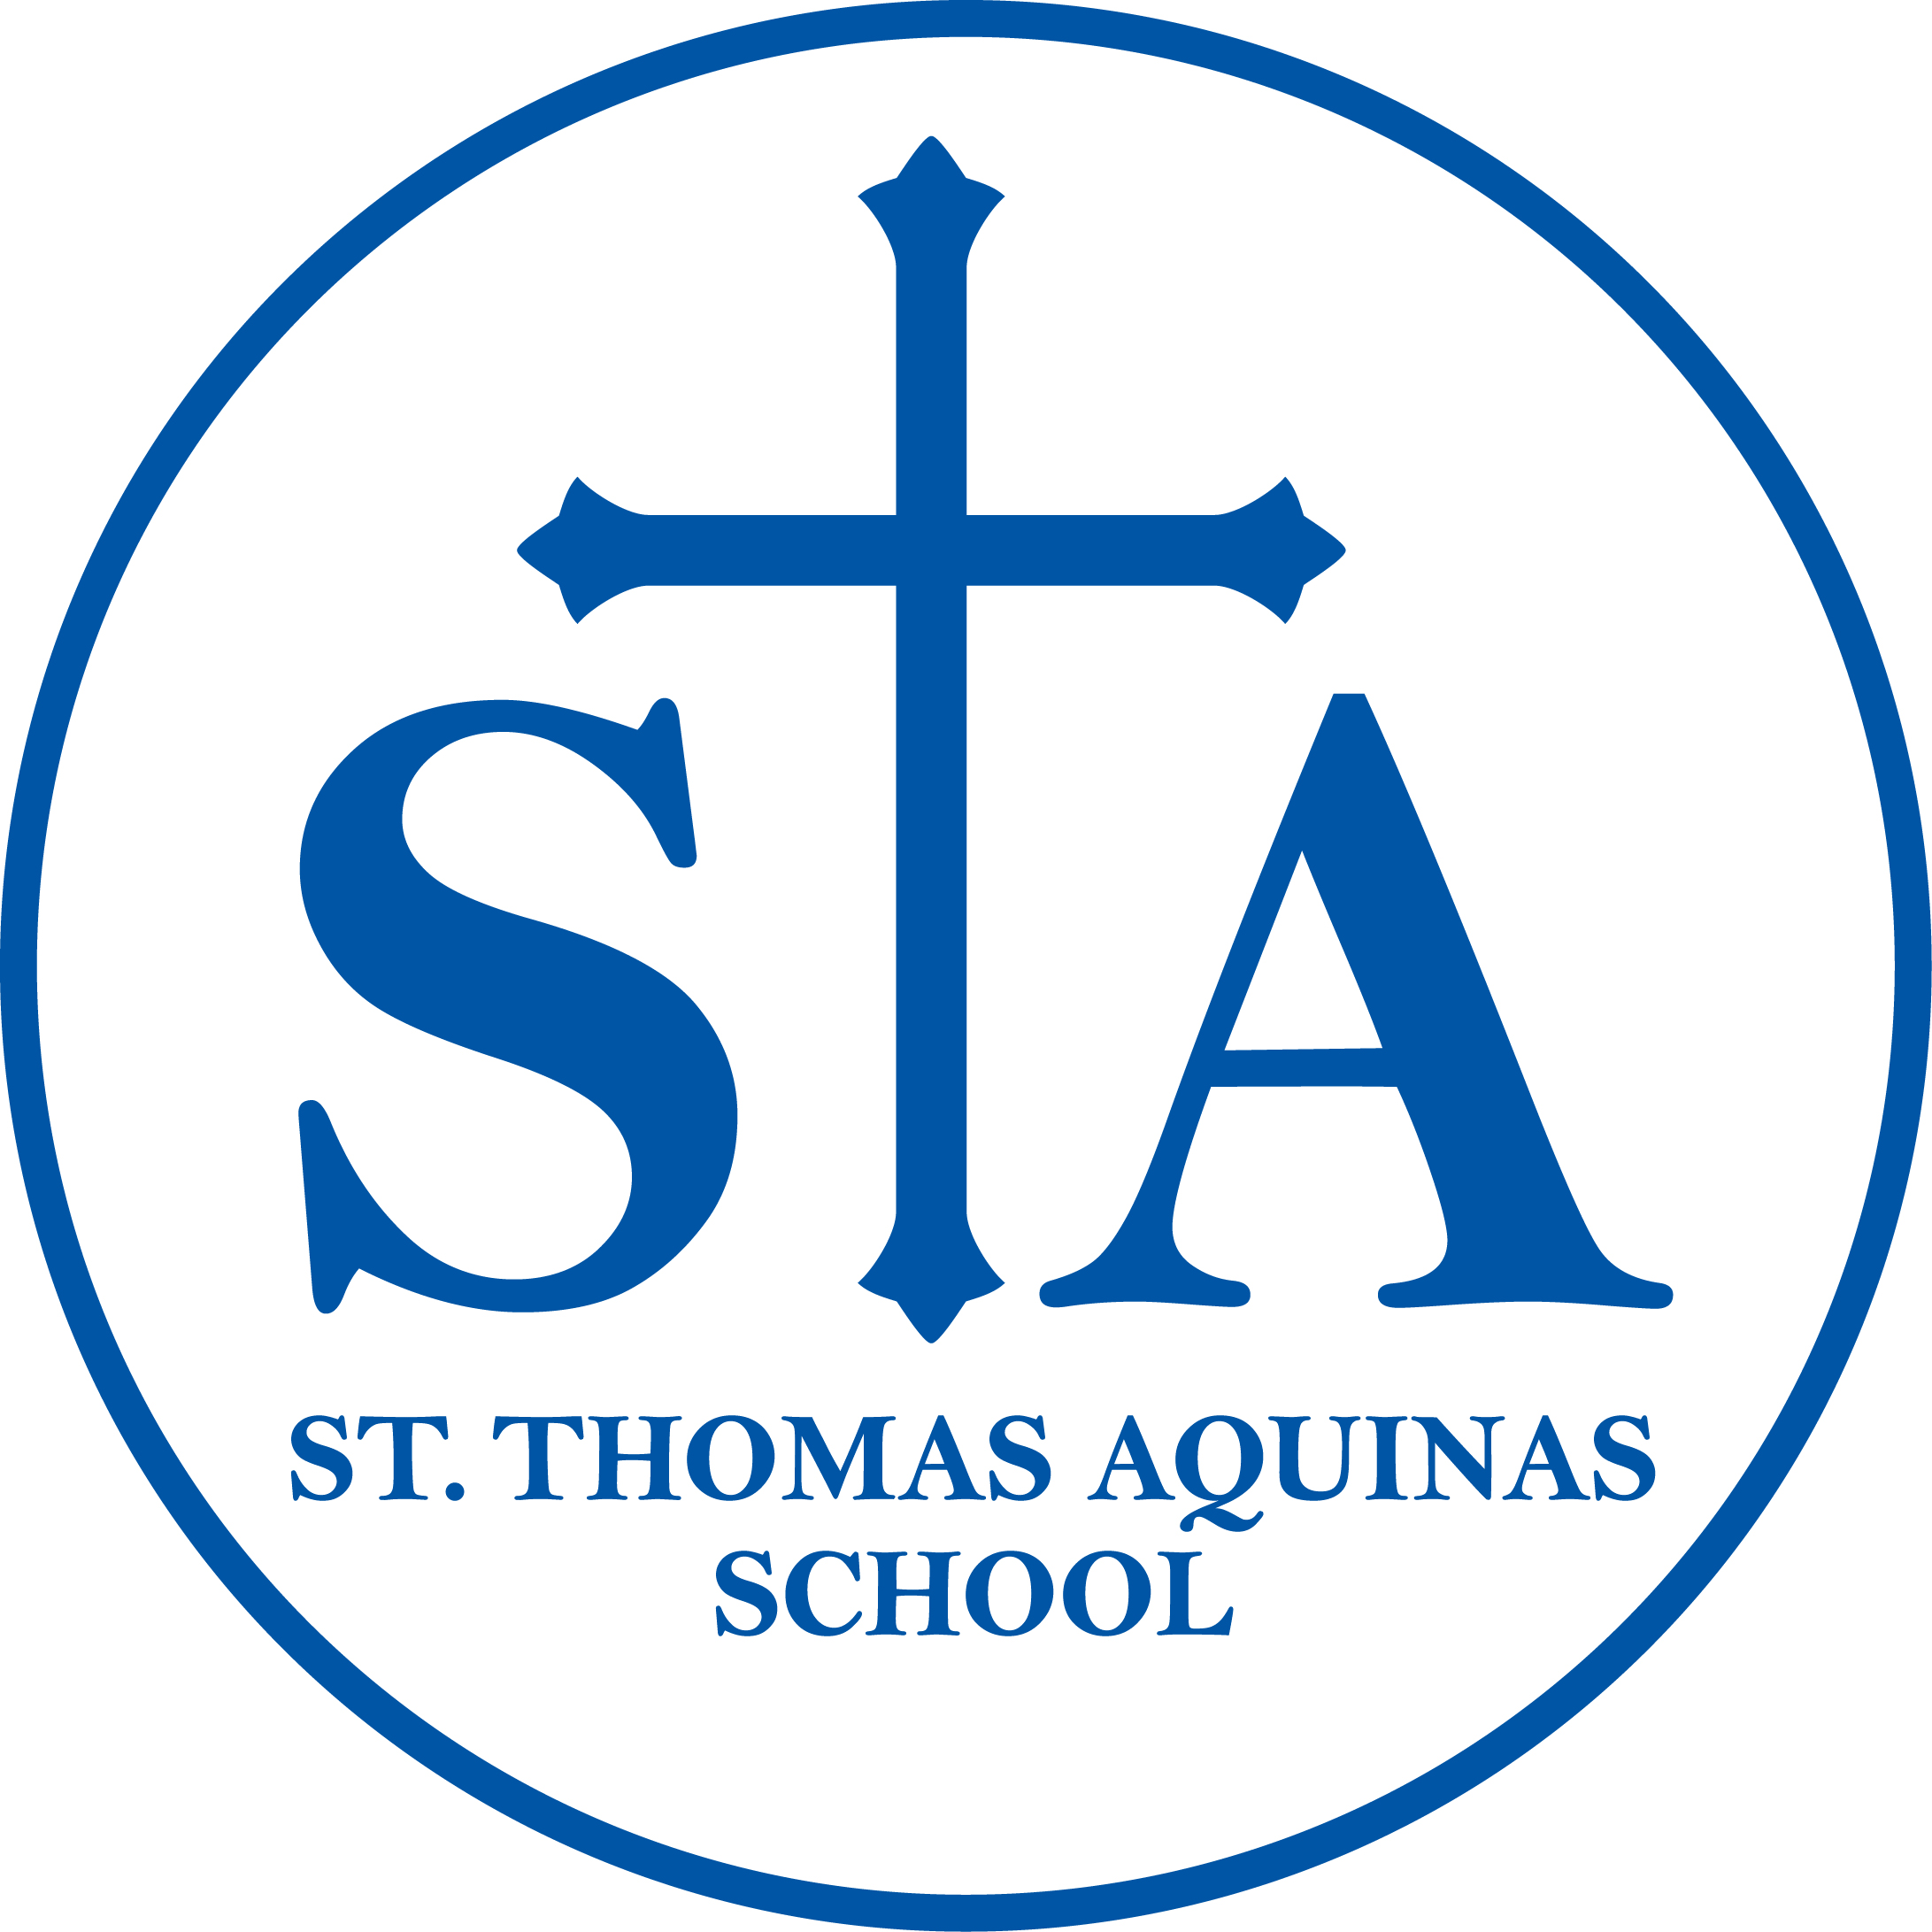 St. Thomas Aquinas School First Annual Golf Tournament logo